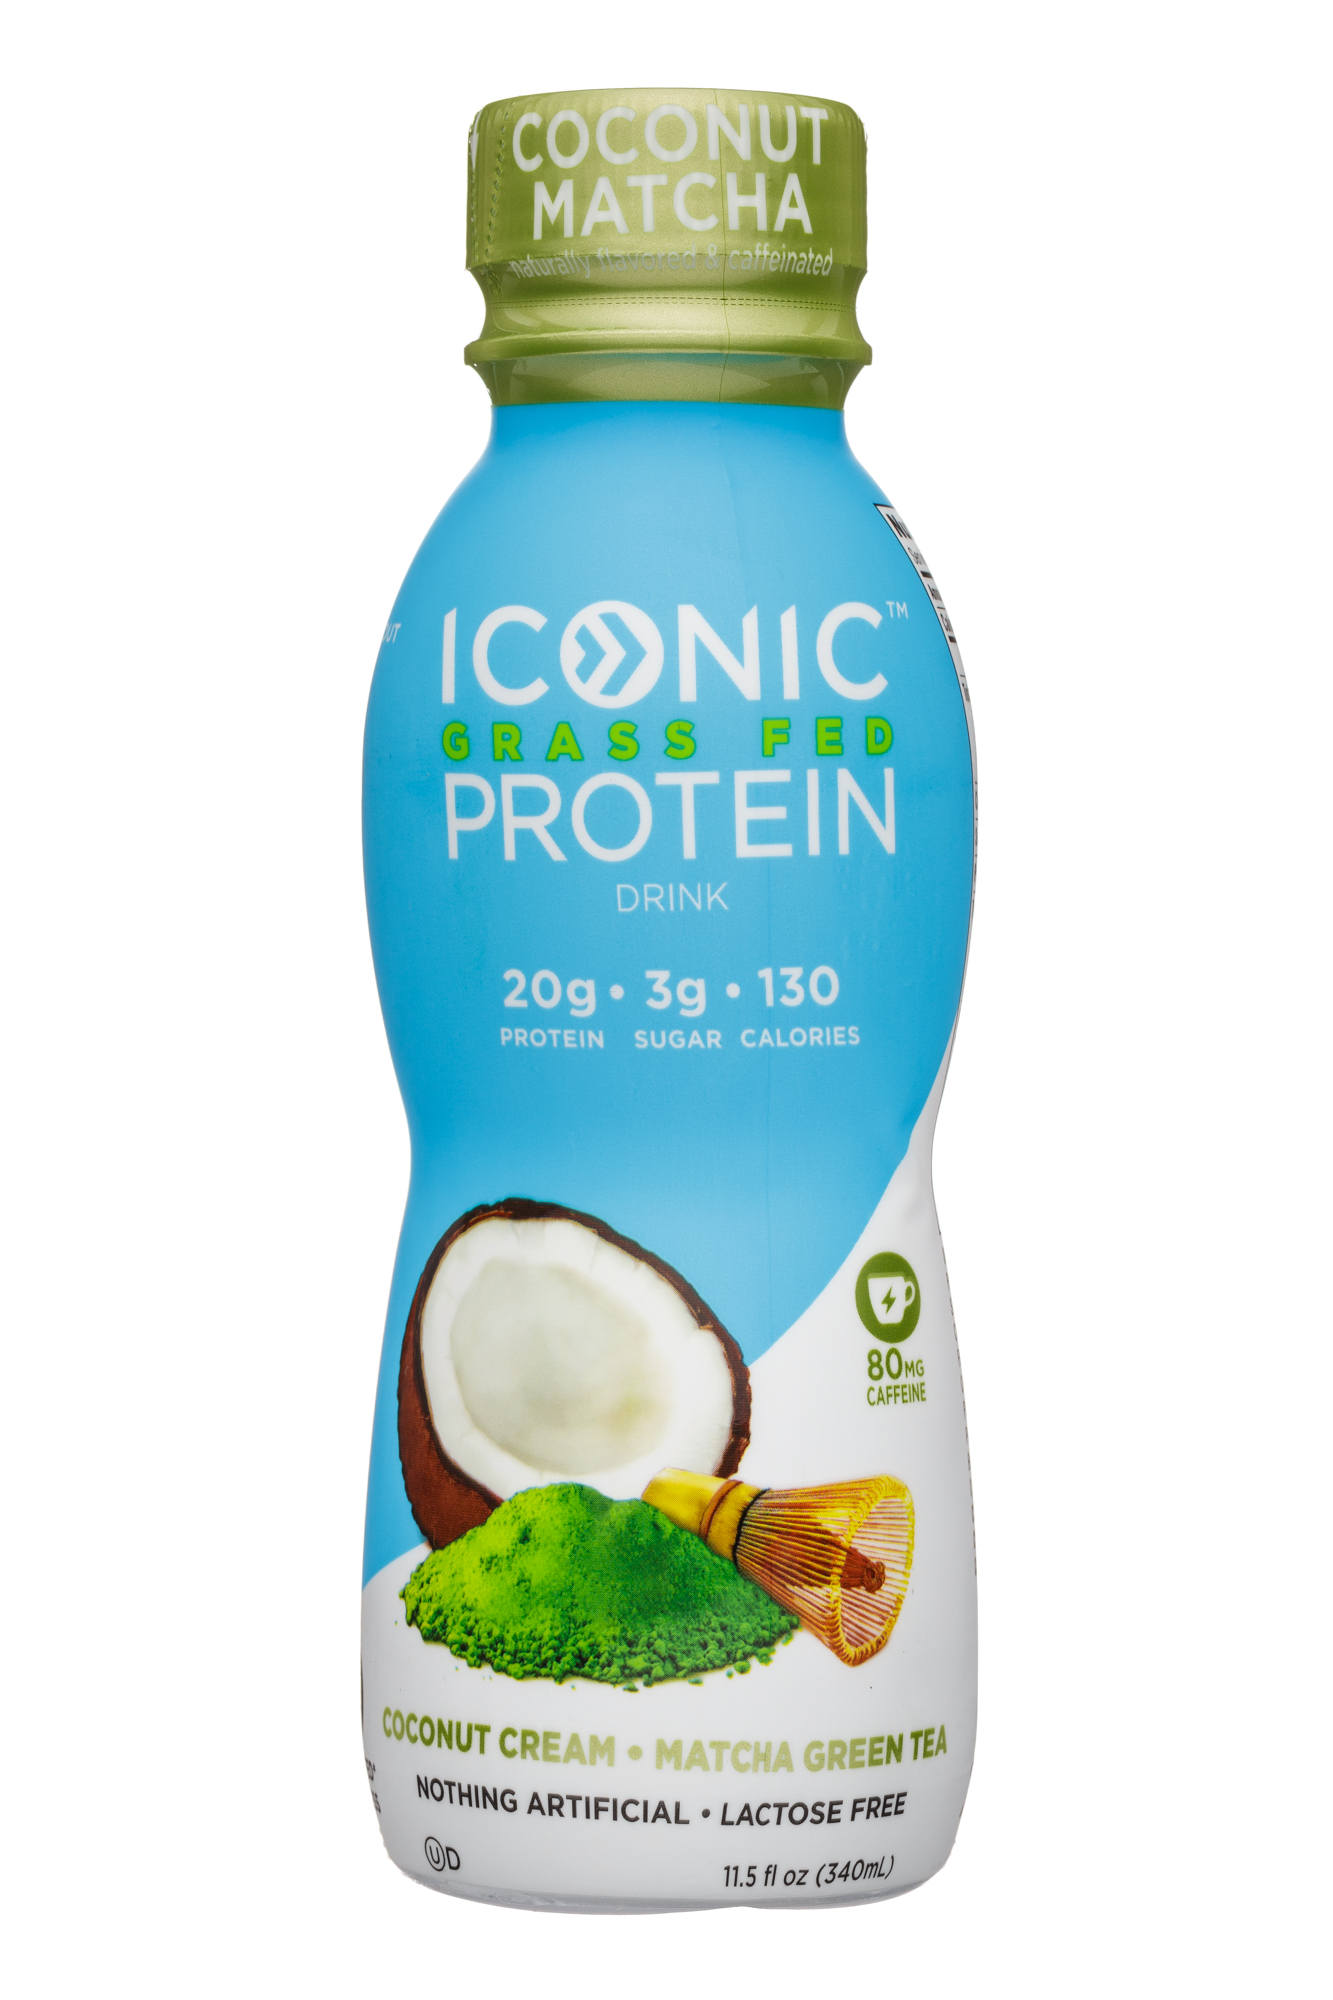 Coconut Matcha Grass Fed Protein Drink